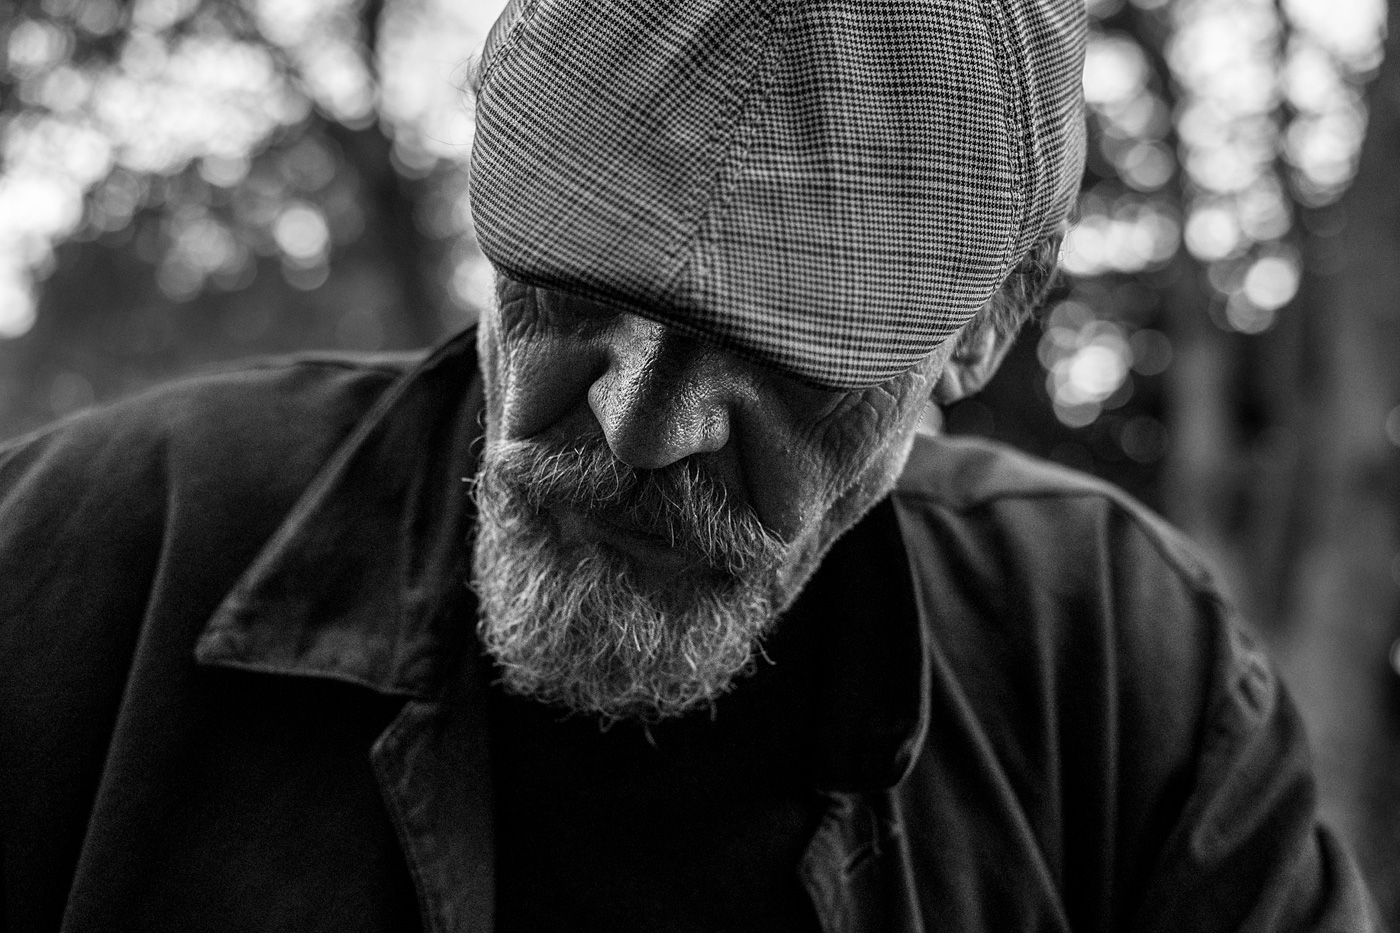 Senior man with beard in flat cap looking down with eyes hidden, Chatham Place Brighton UK black and white landscape character portrait © P. Maton 2017 eyeteeth.net